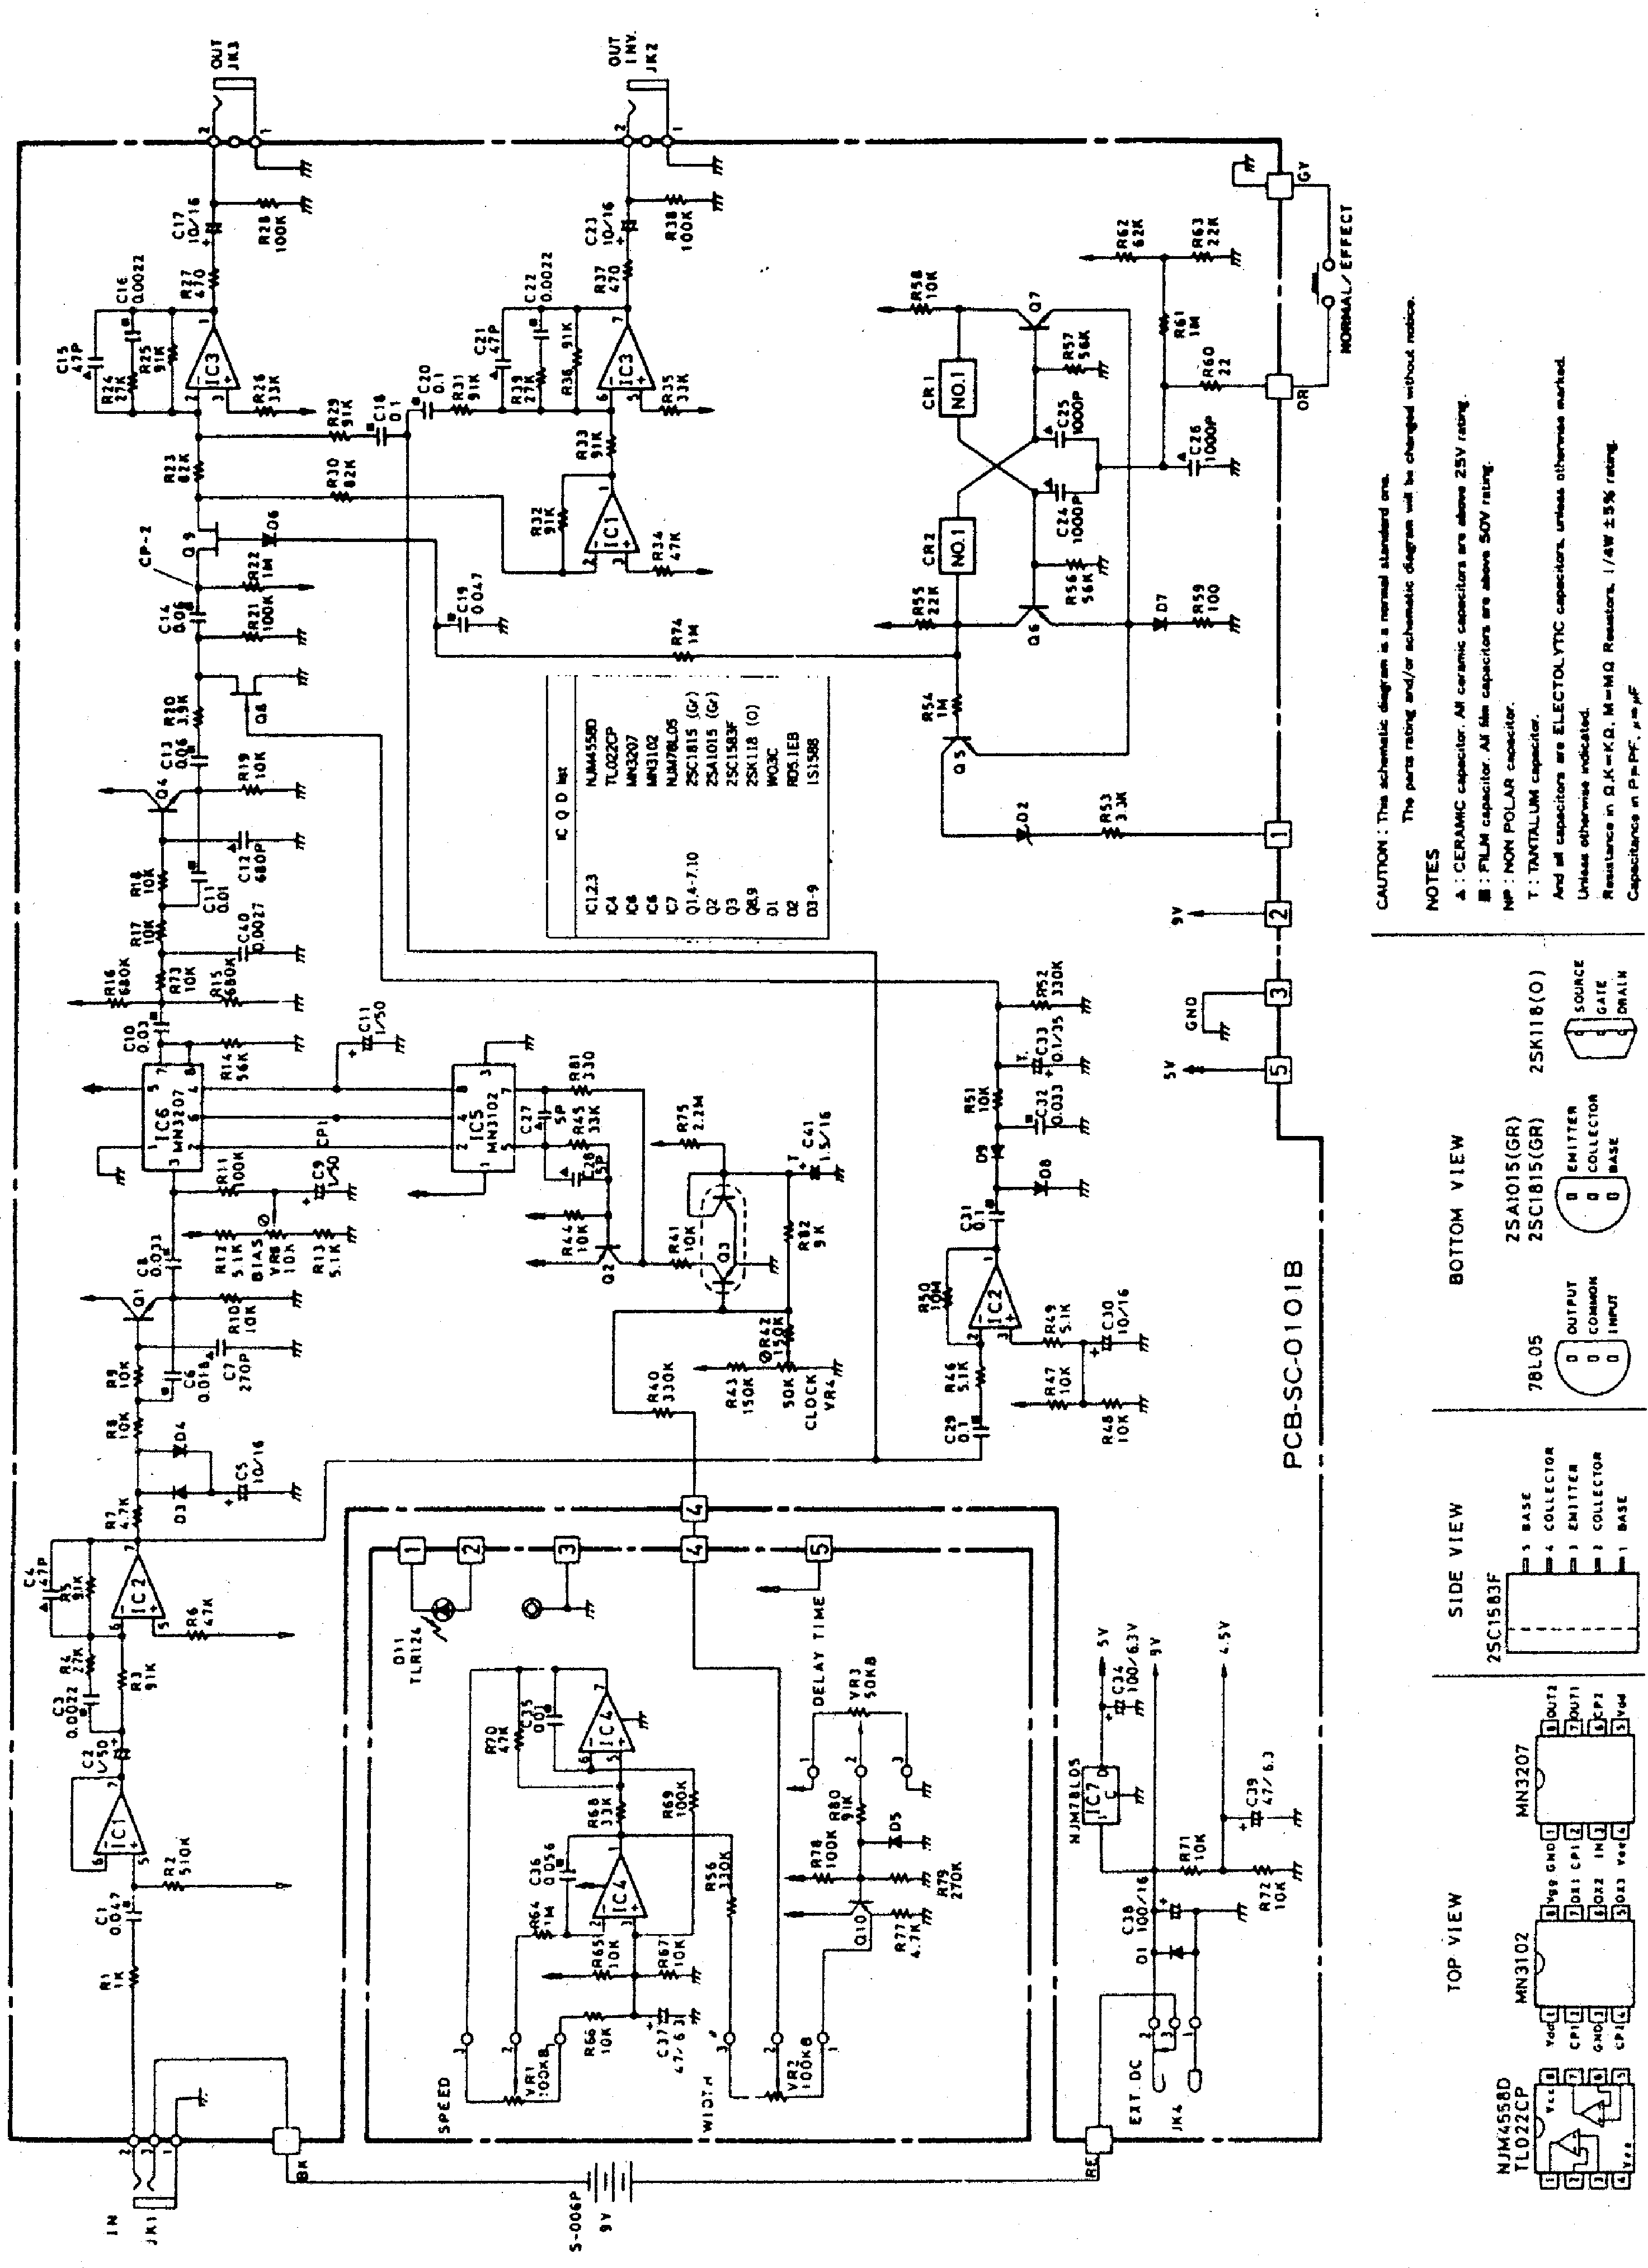 Ibanez Sc10 Sch Service Manual Download Schematics